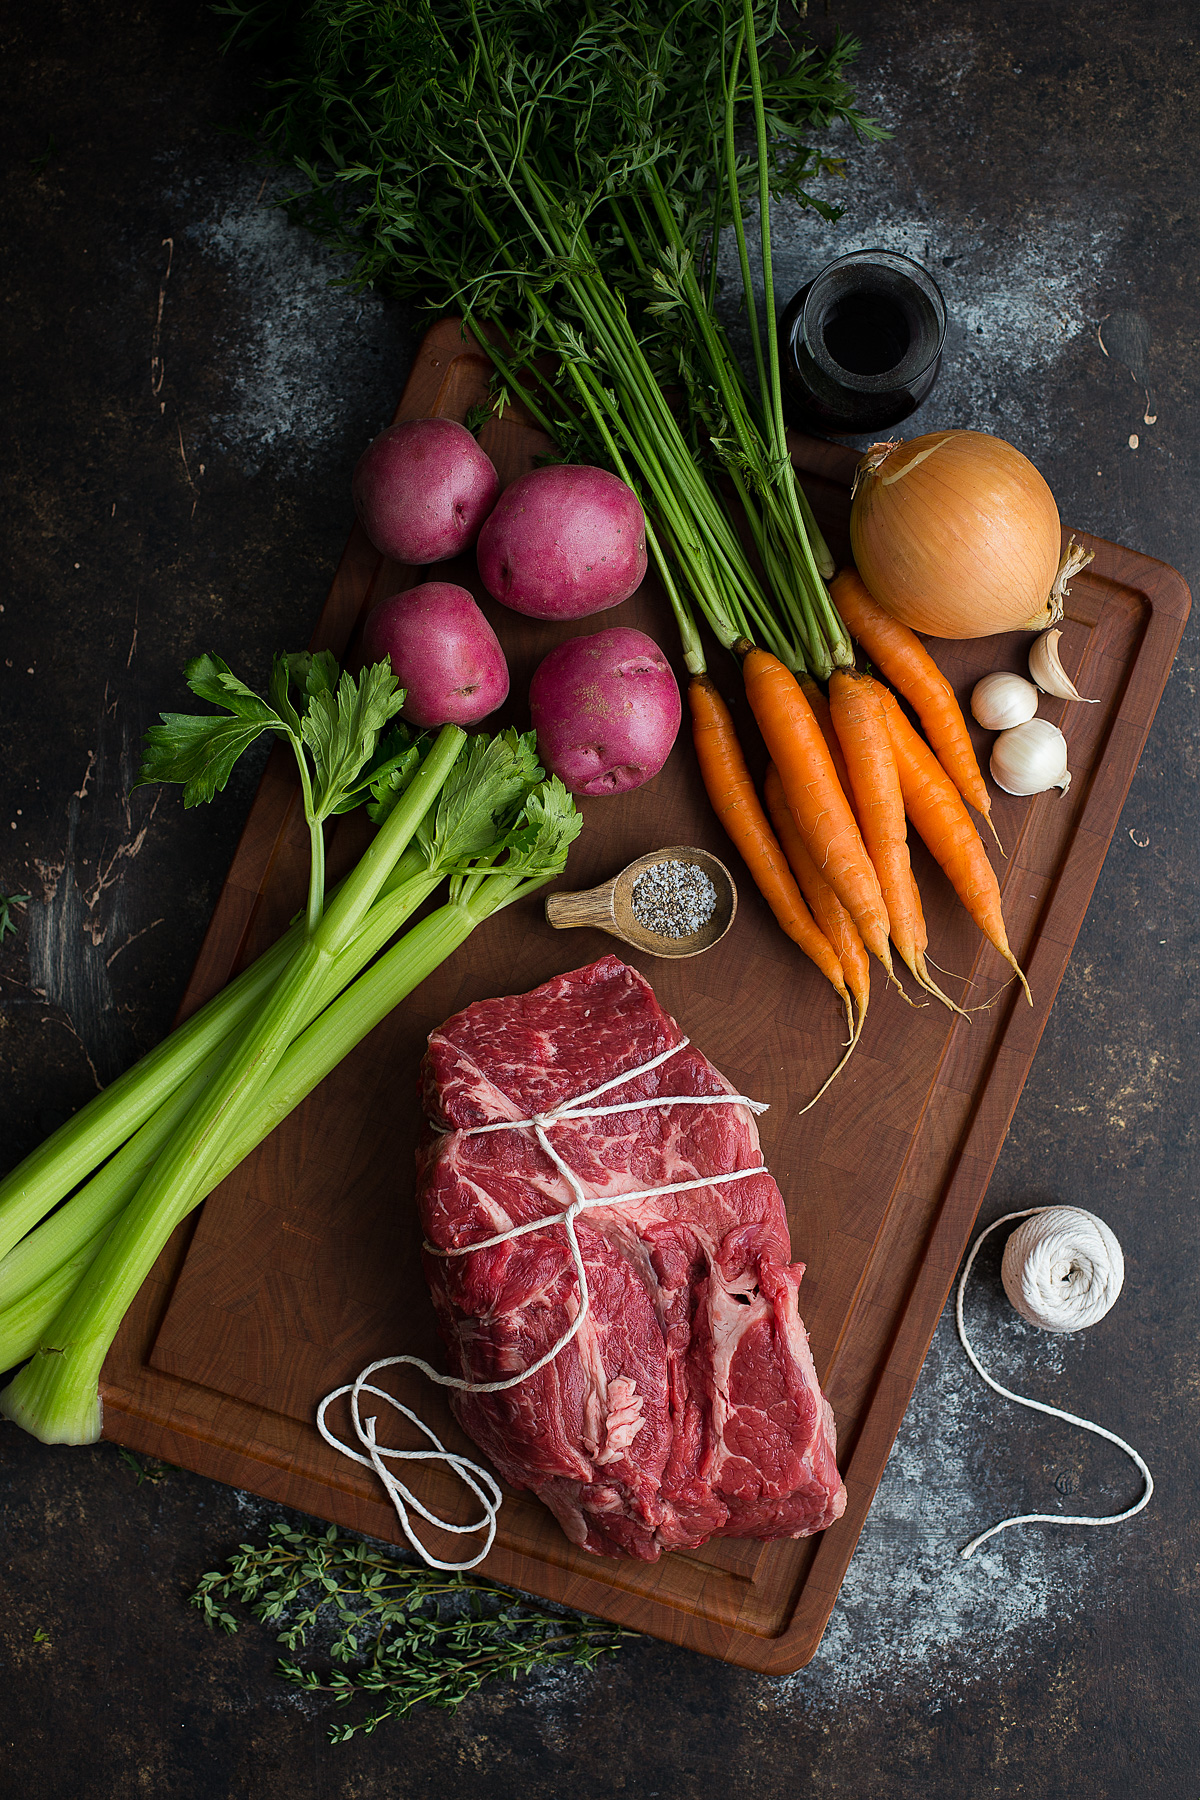 Ingredients for making a pot roast set out on a wooden cutting board.